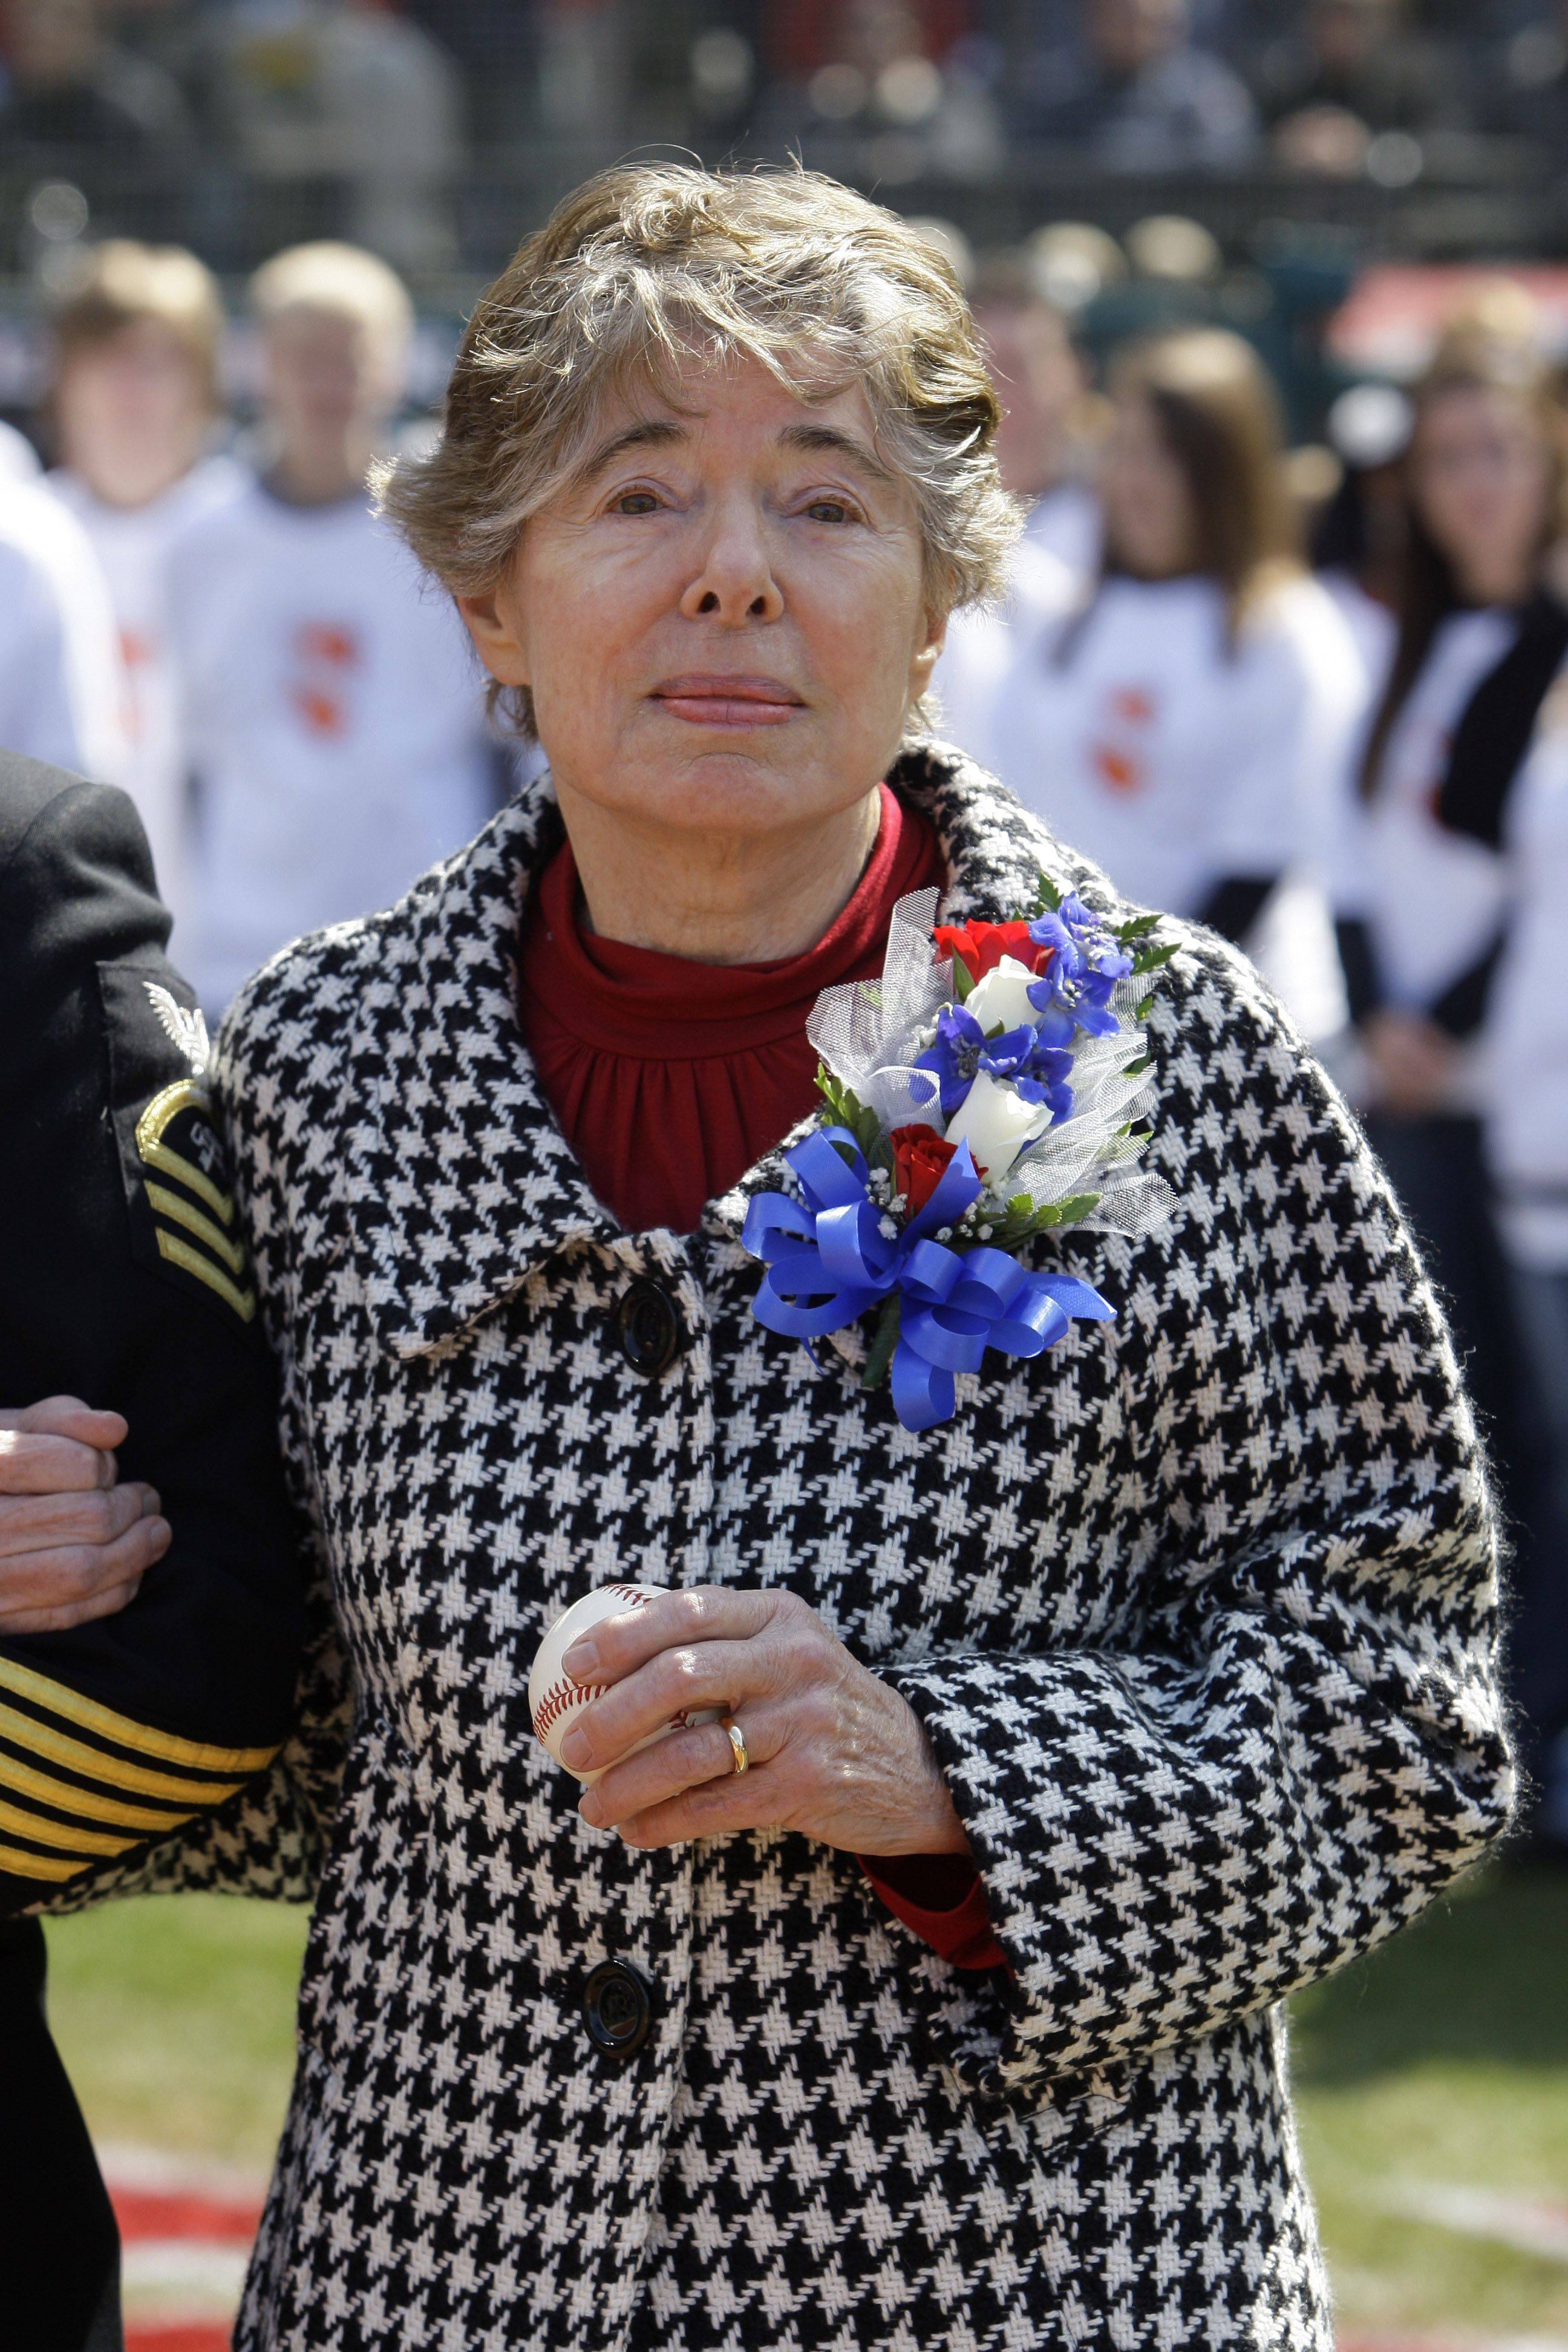 Anne Feller, wife of the late Cleveland Indians player Bob Feller, watches a video tribute of her husband before the Indians play the Chicago White Sox in an opening day baseball game on Friday, April 1, 2011, in Cleveland.